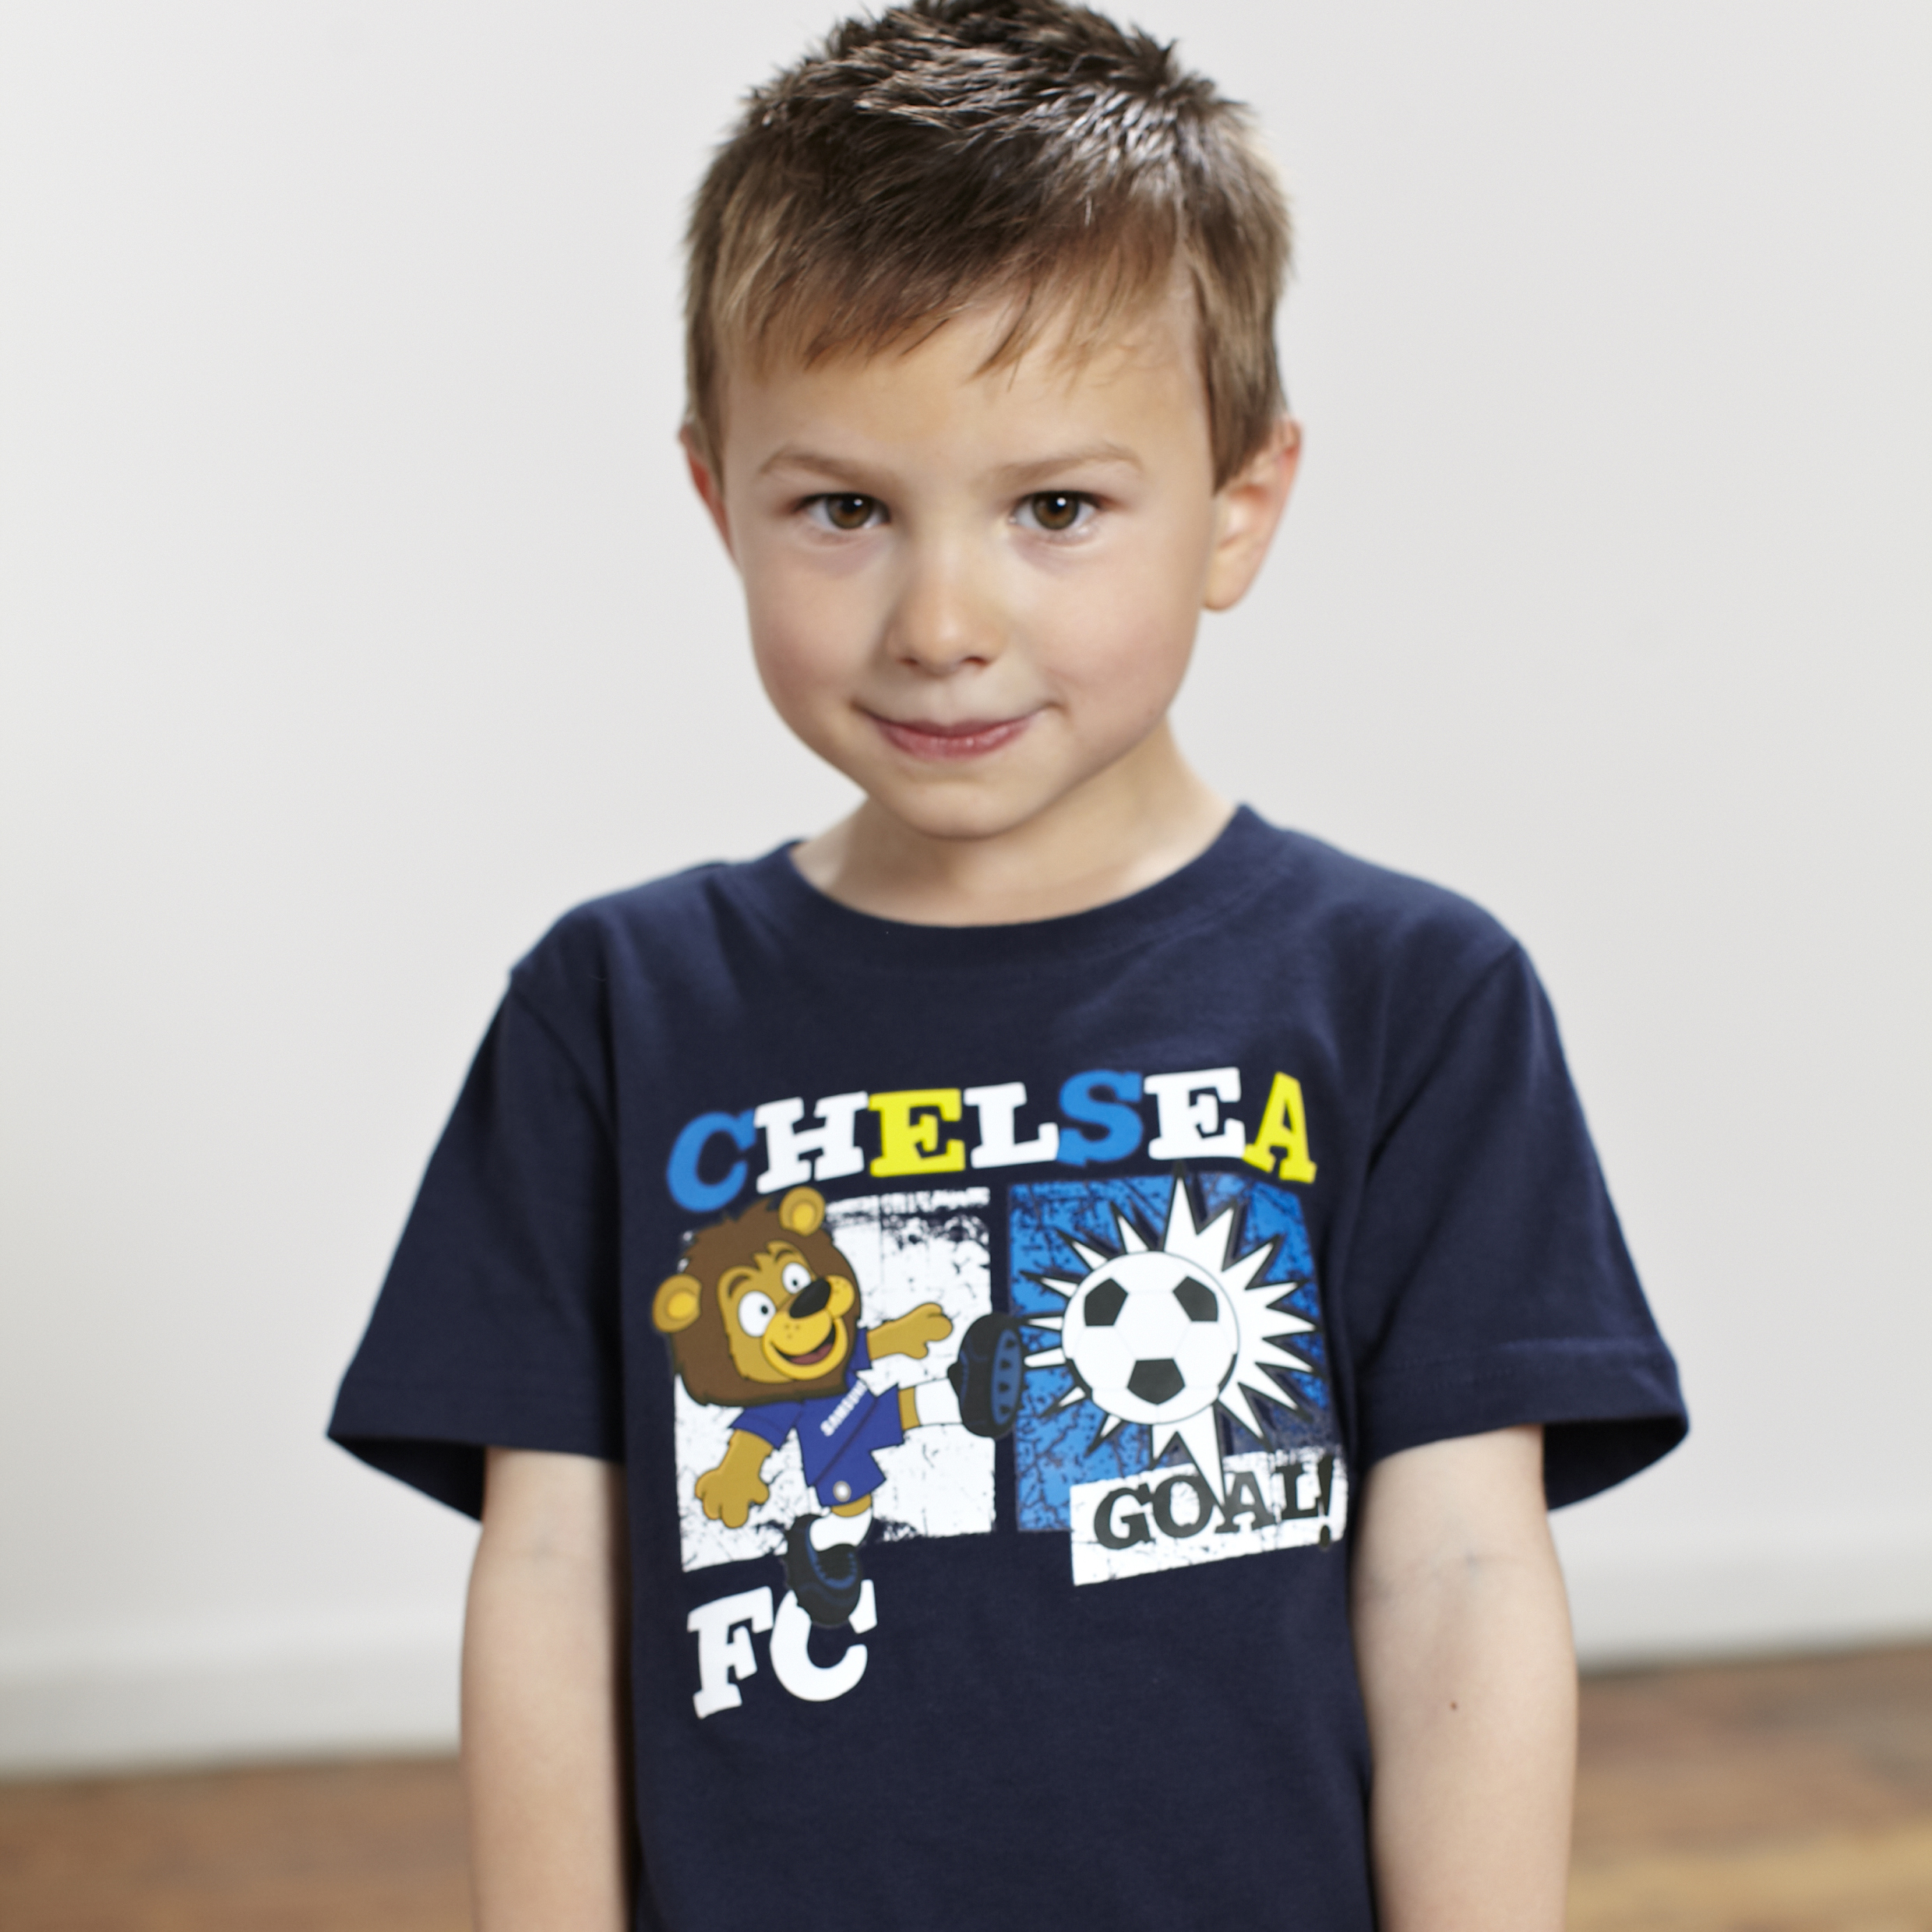 Chelsea Stamford Goal Graphic T-Shirt - OT Navy - Infant Boys